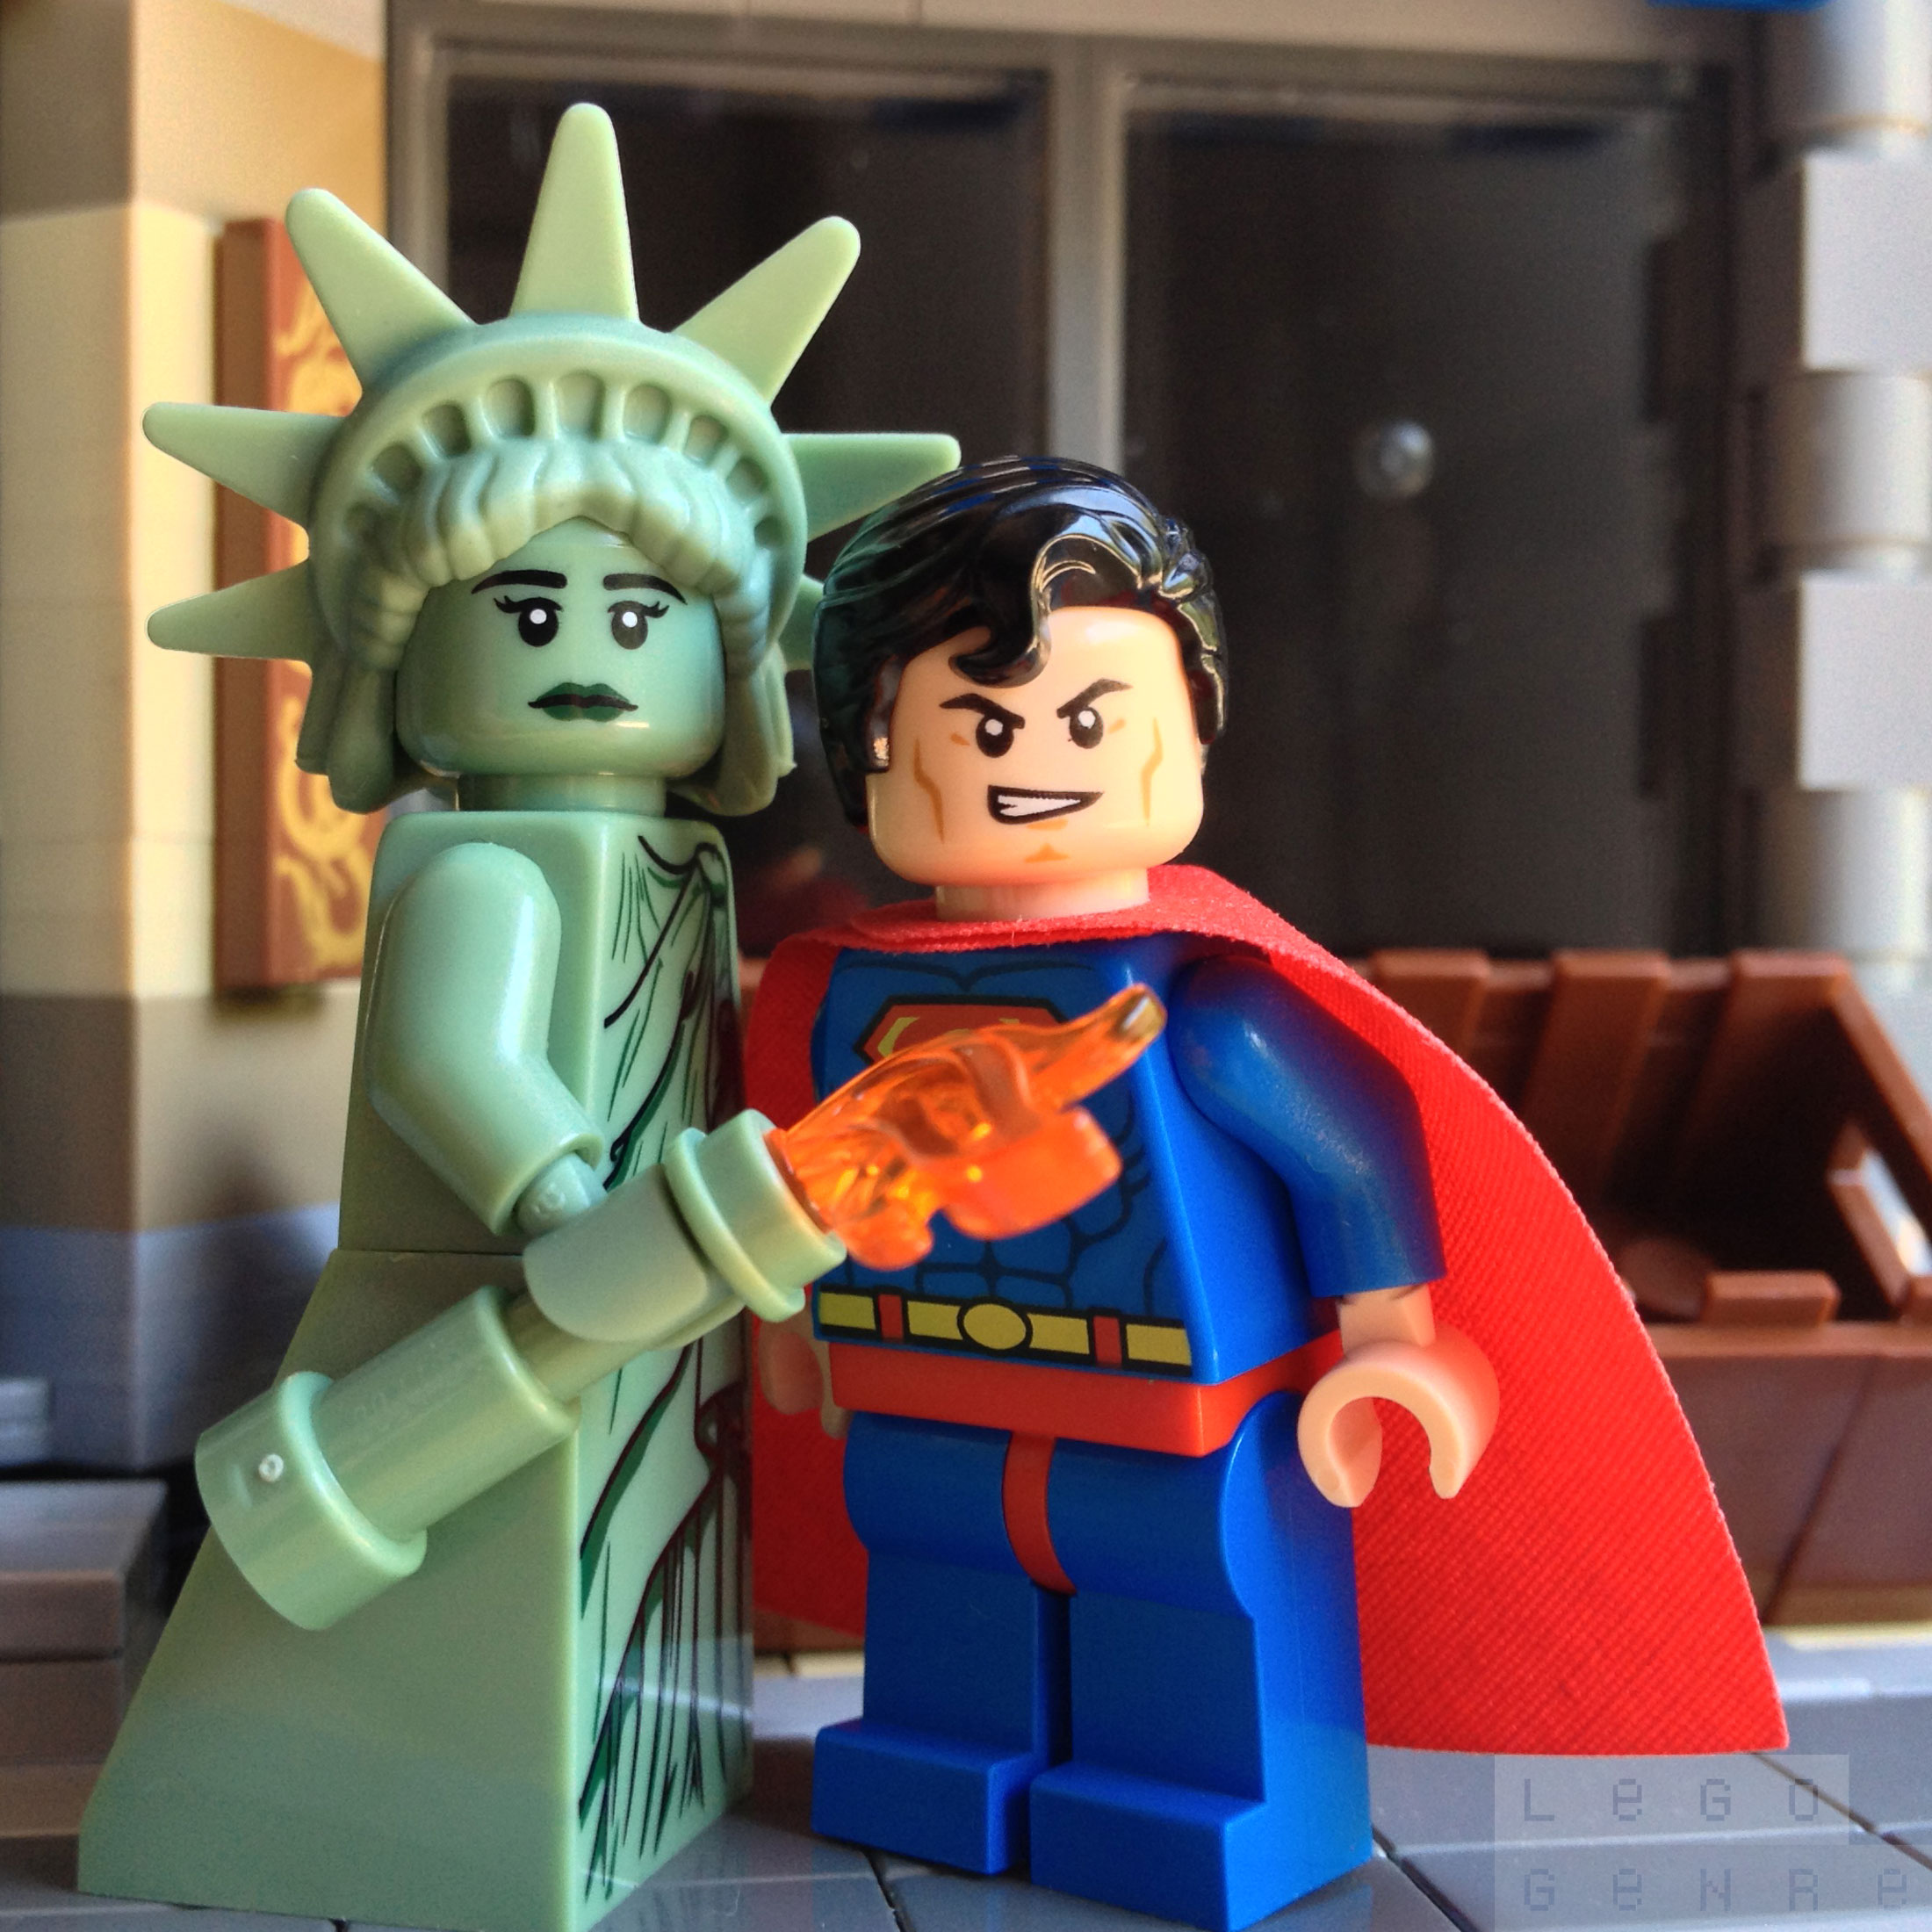 LegoGenre 00277: Happy Birthday America